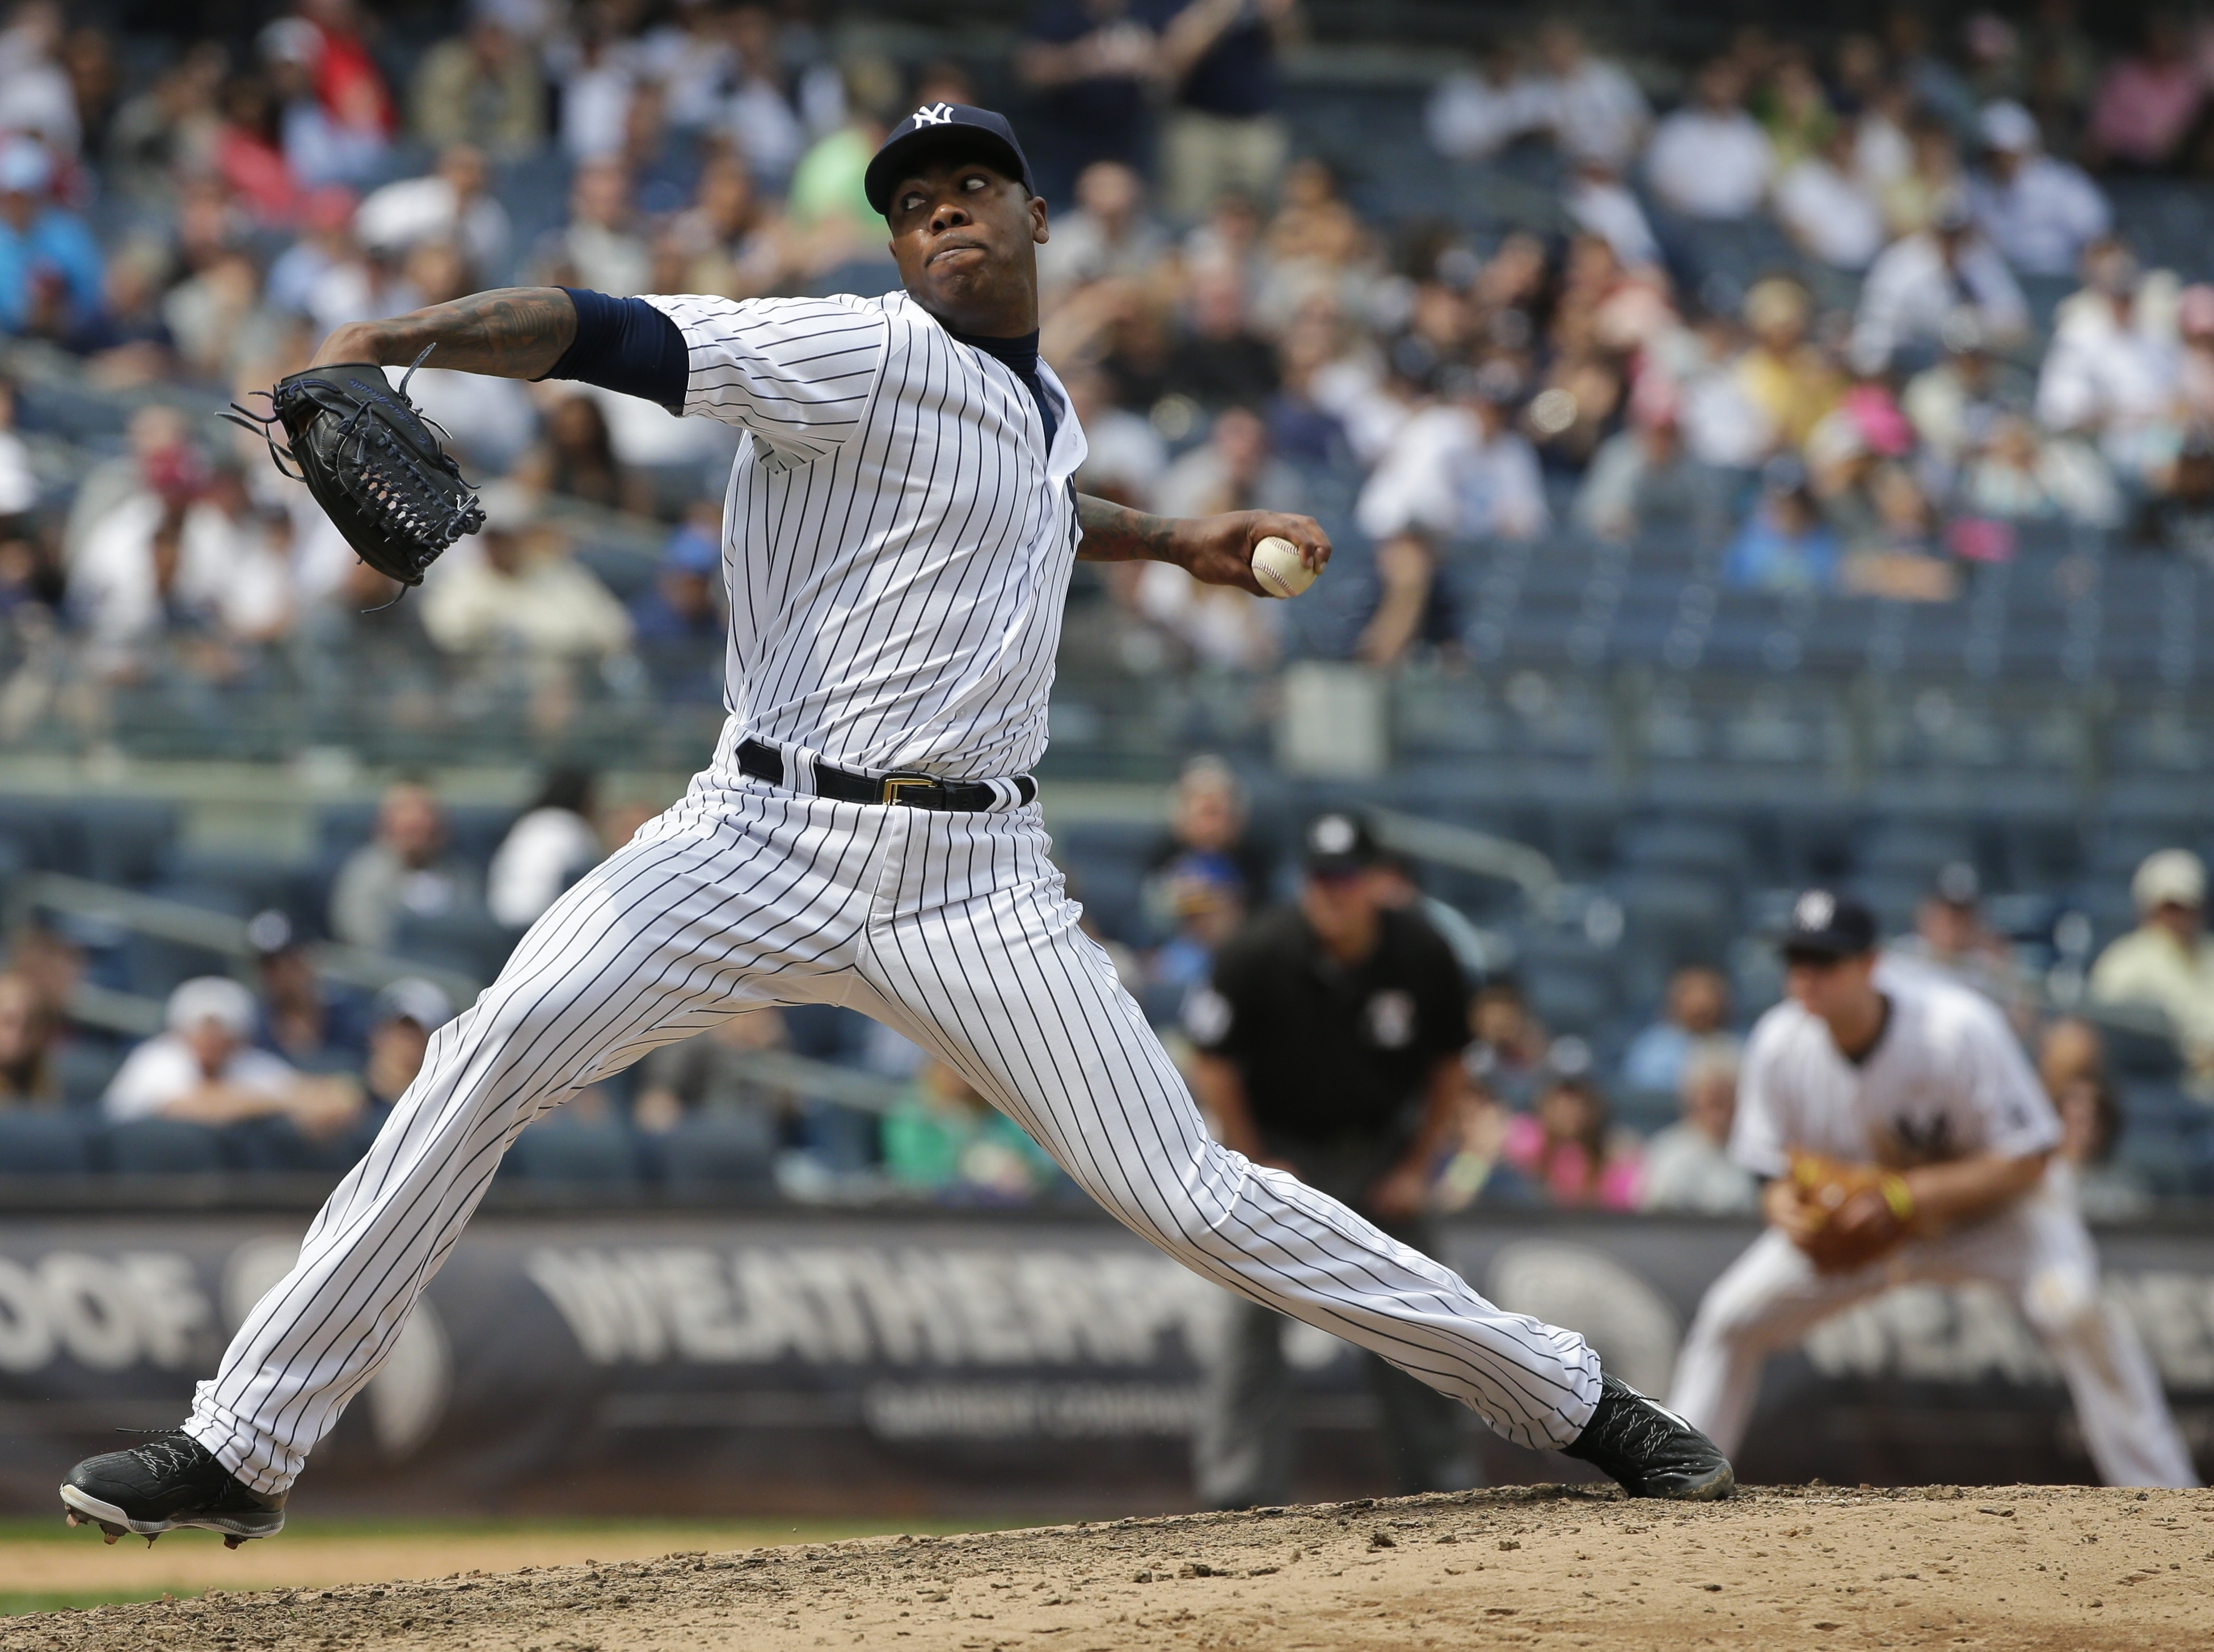 New York Yankees relief pitcher Aroldis Chapman (54) delivers a pitch during the ninth inning of a baseball game Saturday, May 14, 2016, in New York. Chapman picked up his second save as the Yankees won 2-1. (AP Photo/Frank Franklin II)